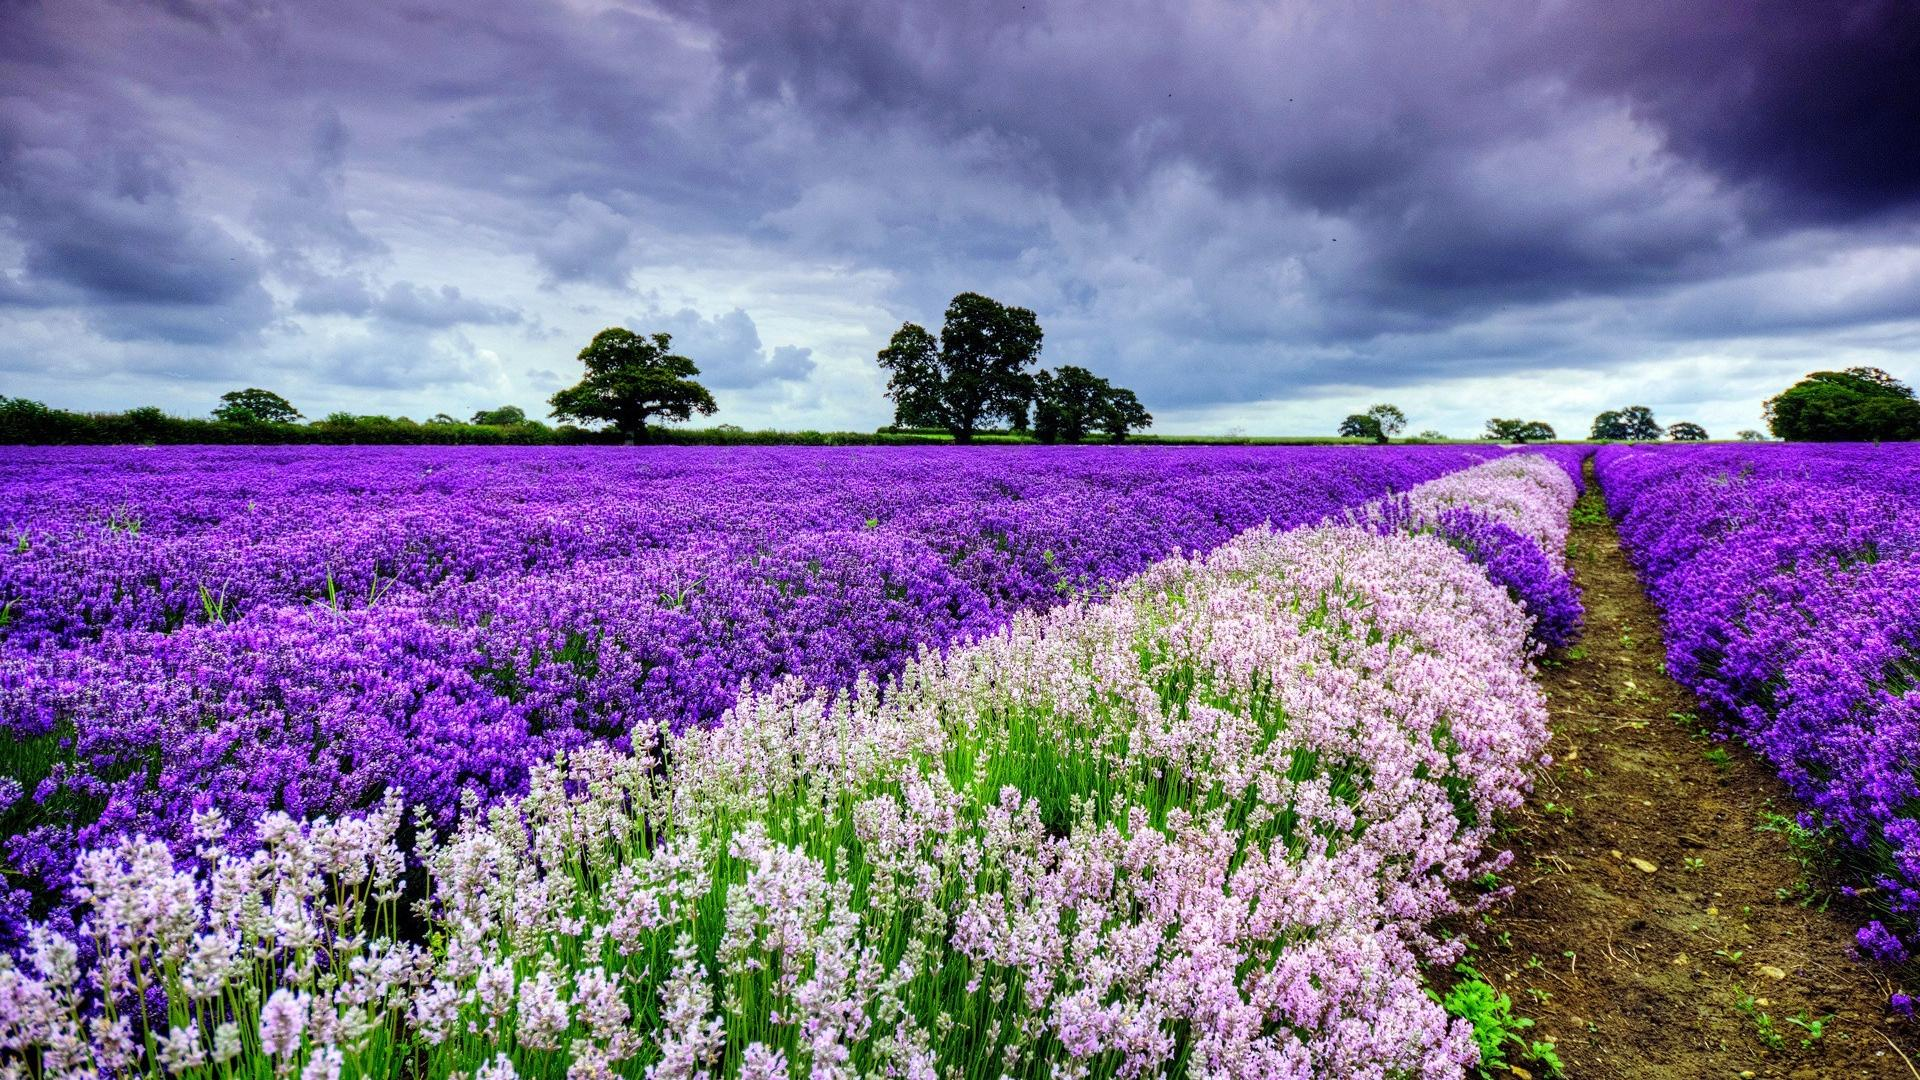 Spring Wallpapers   Top Spring Backgrounds   WallpaperAccess 1920x1080